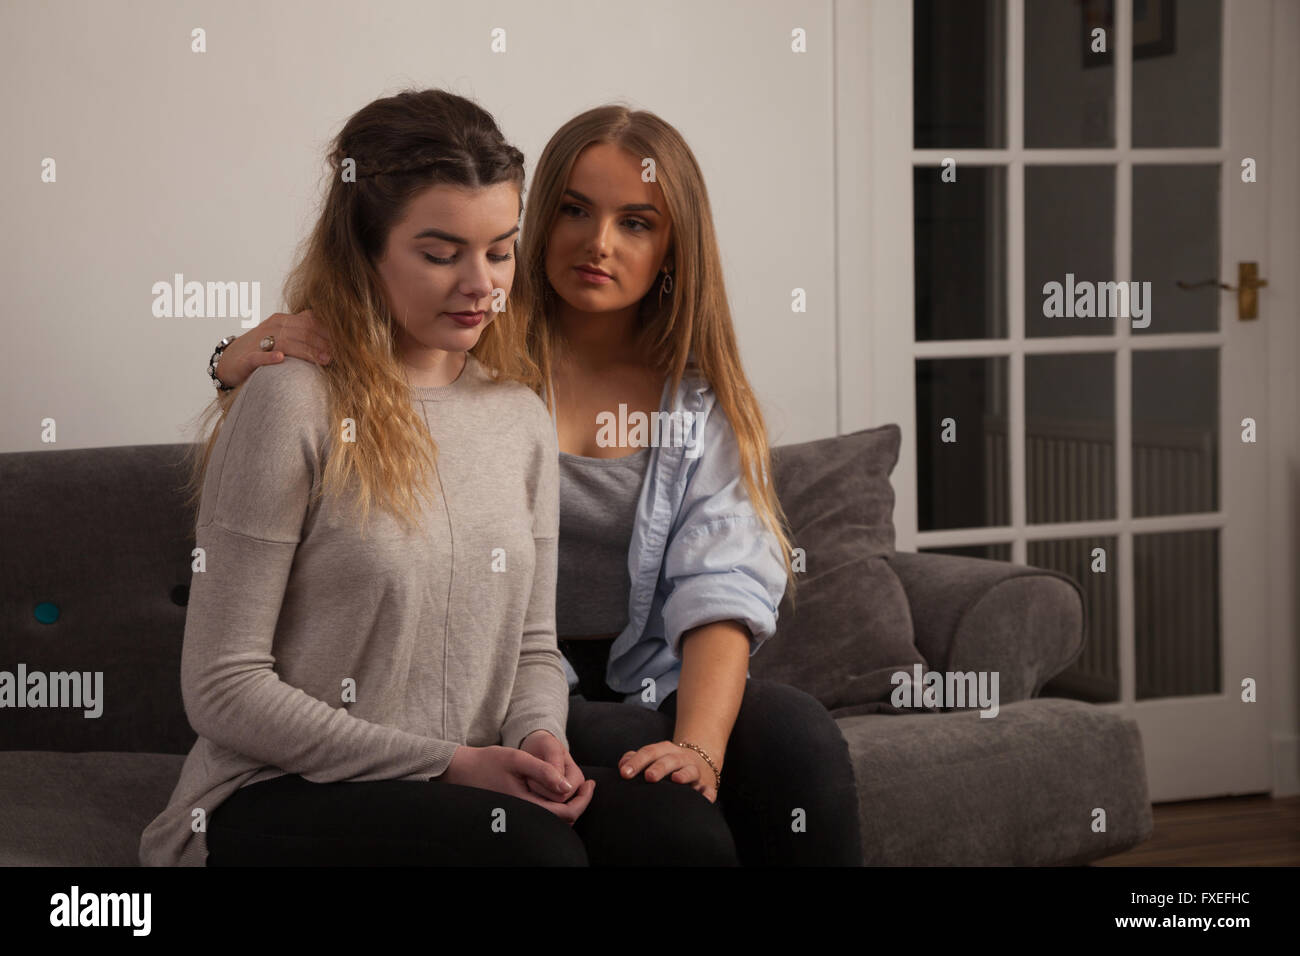 Two young women comforting each other at home on a sofa. Stock Photo